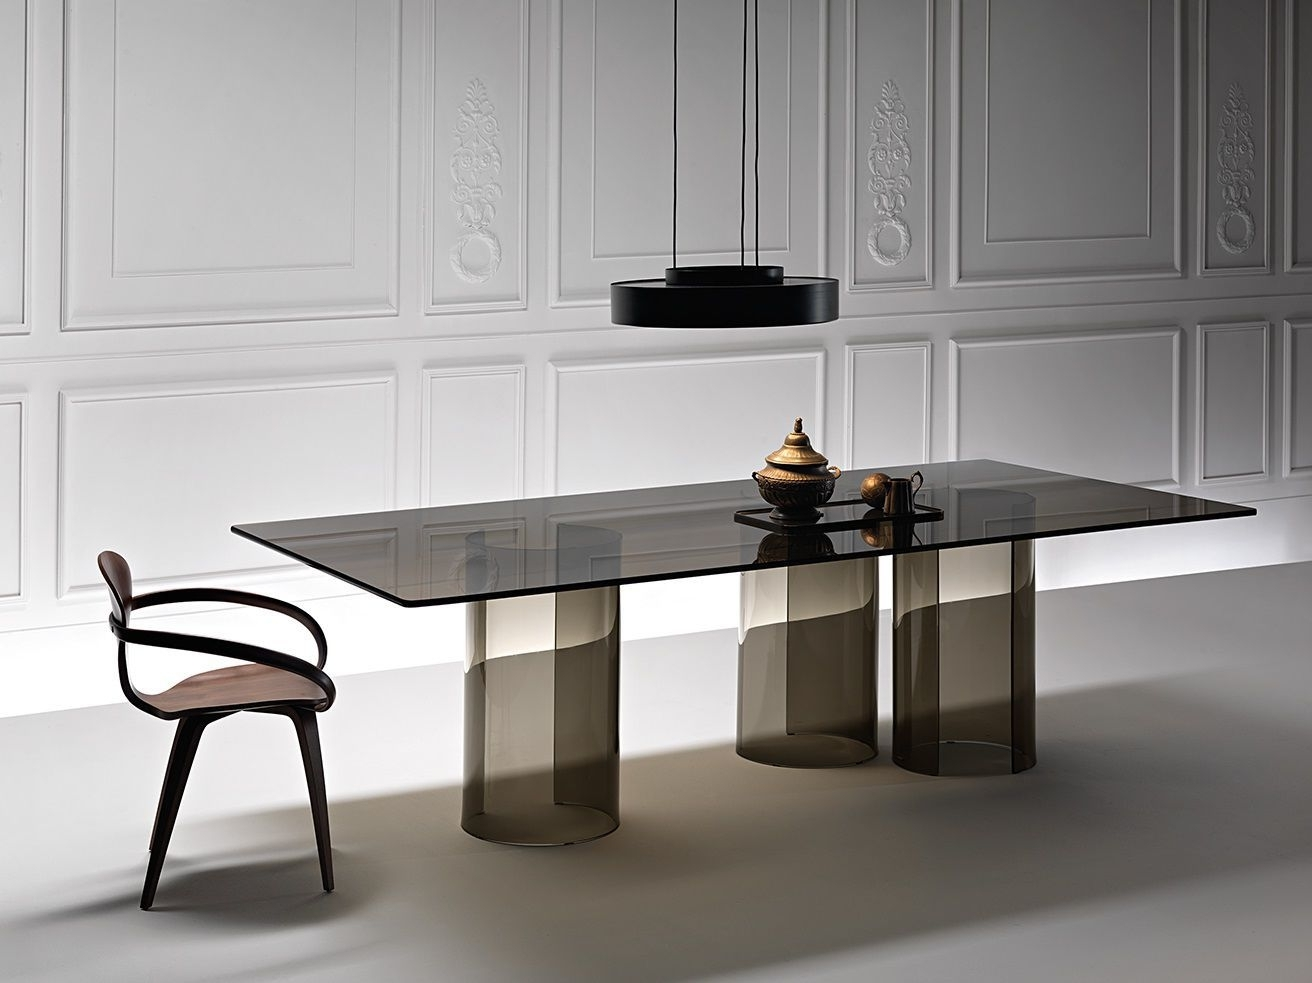 Well Known Contemporary Dining Table / Smoked Glass / Curved Glass For Curved Glass Dining Tables (View 4 of 25)